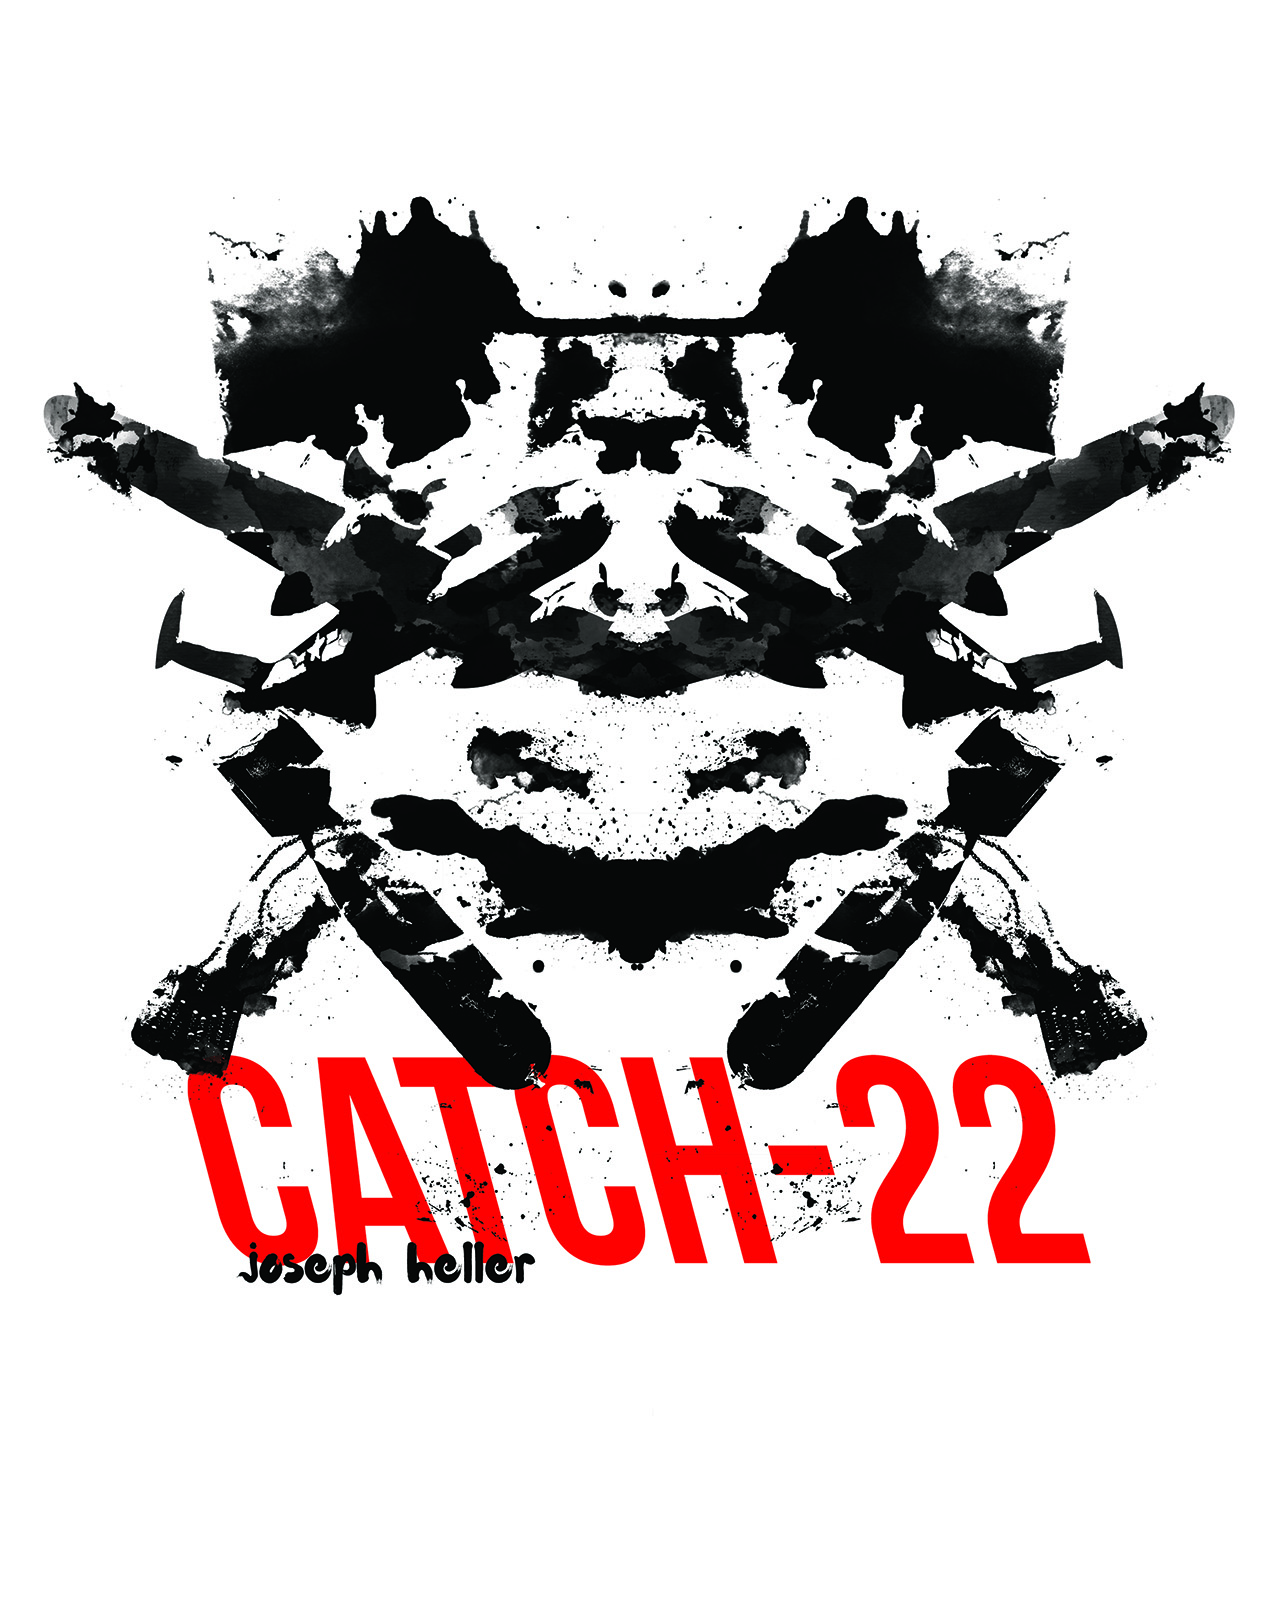 "Chris Graver | ""Catch 22"" by Joseph Heller"